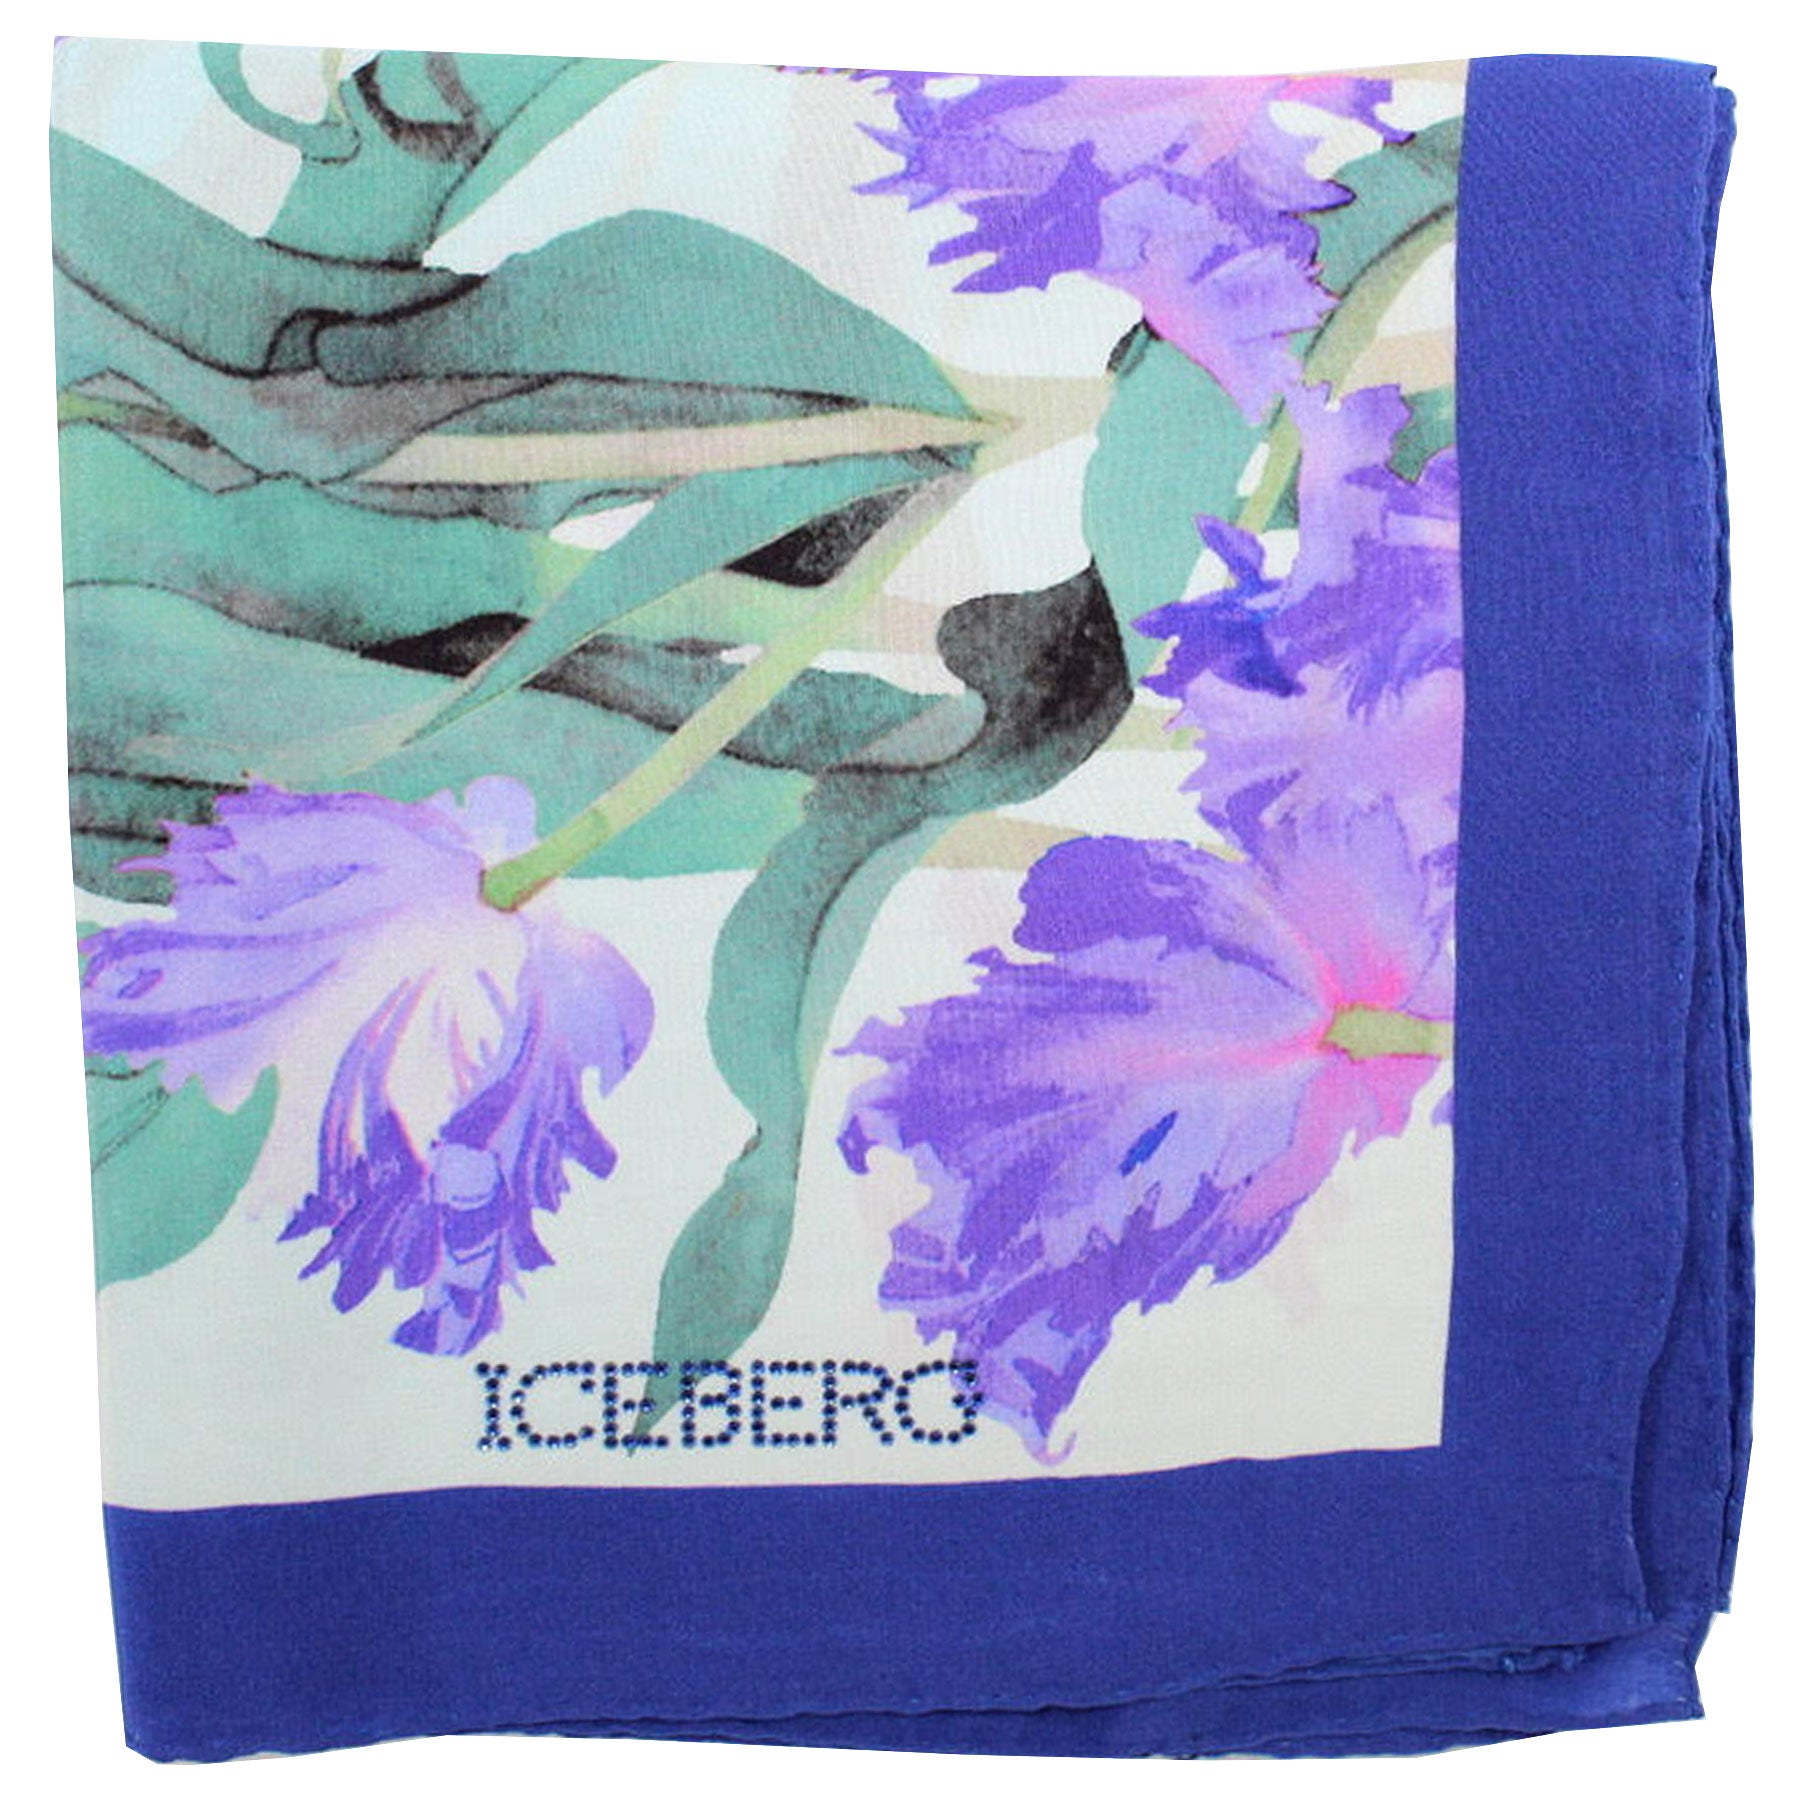 Iceberg Scarf Aqua Purple Floral Design - Large Silk Square Foulard